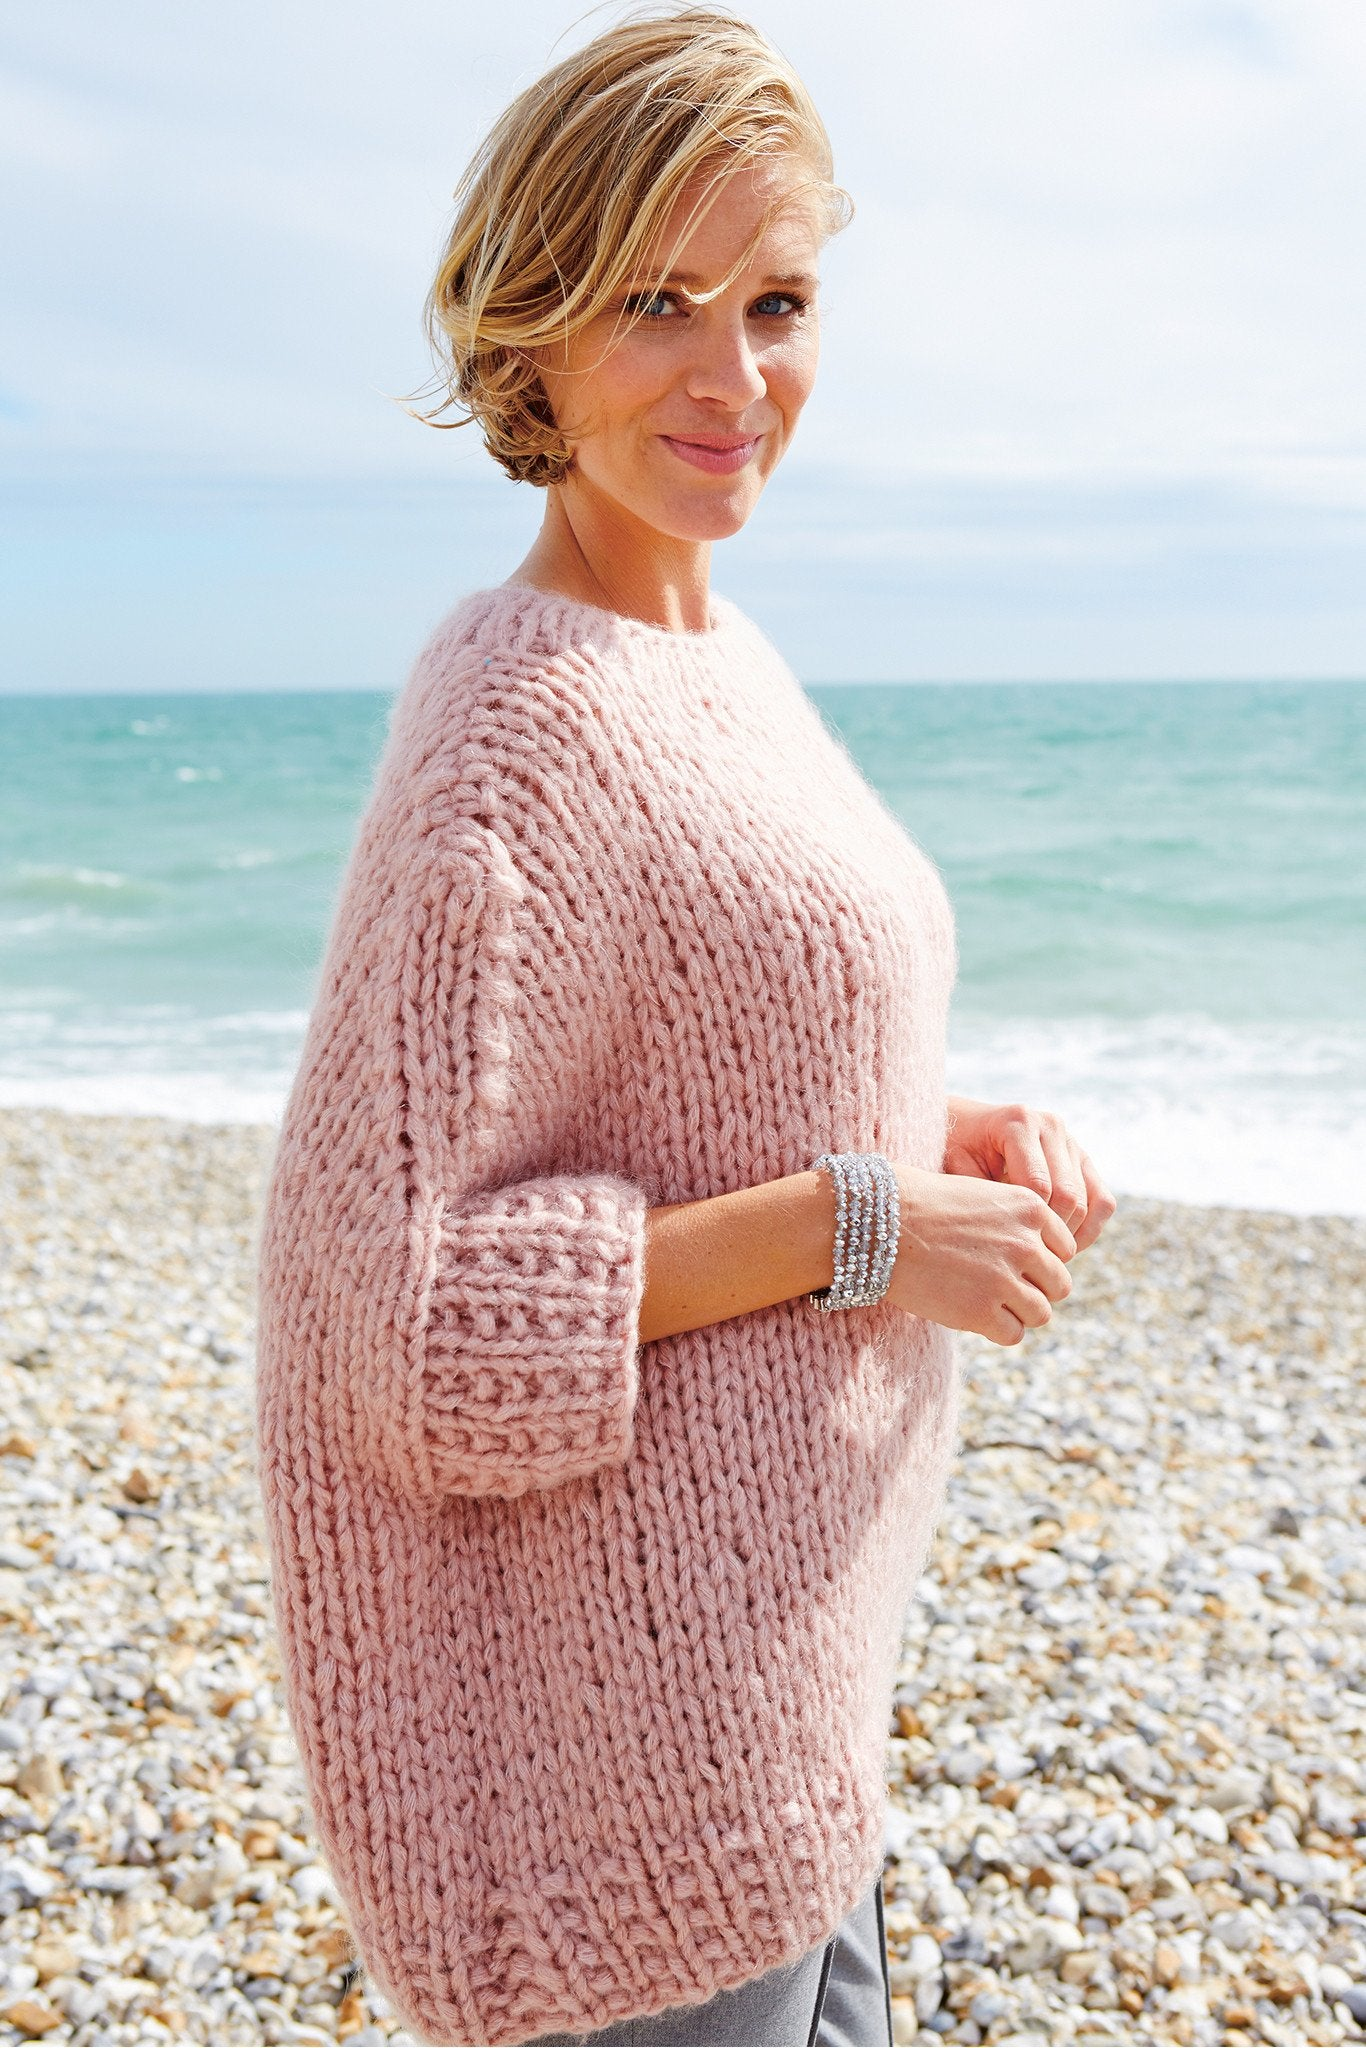 Oversized Jumper Knitting Pattern : Womens Oversized Jumper Knitting Pattern   The Knitting Network